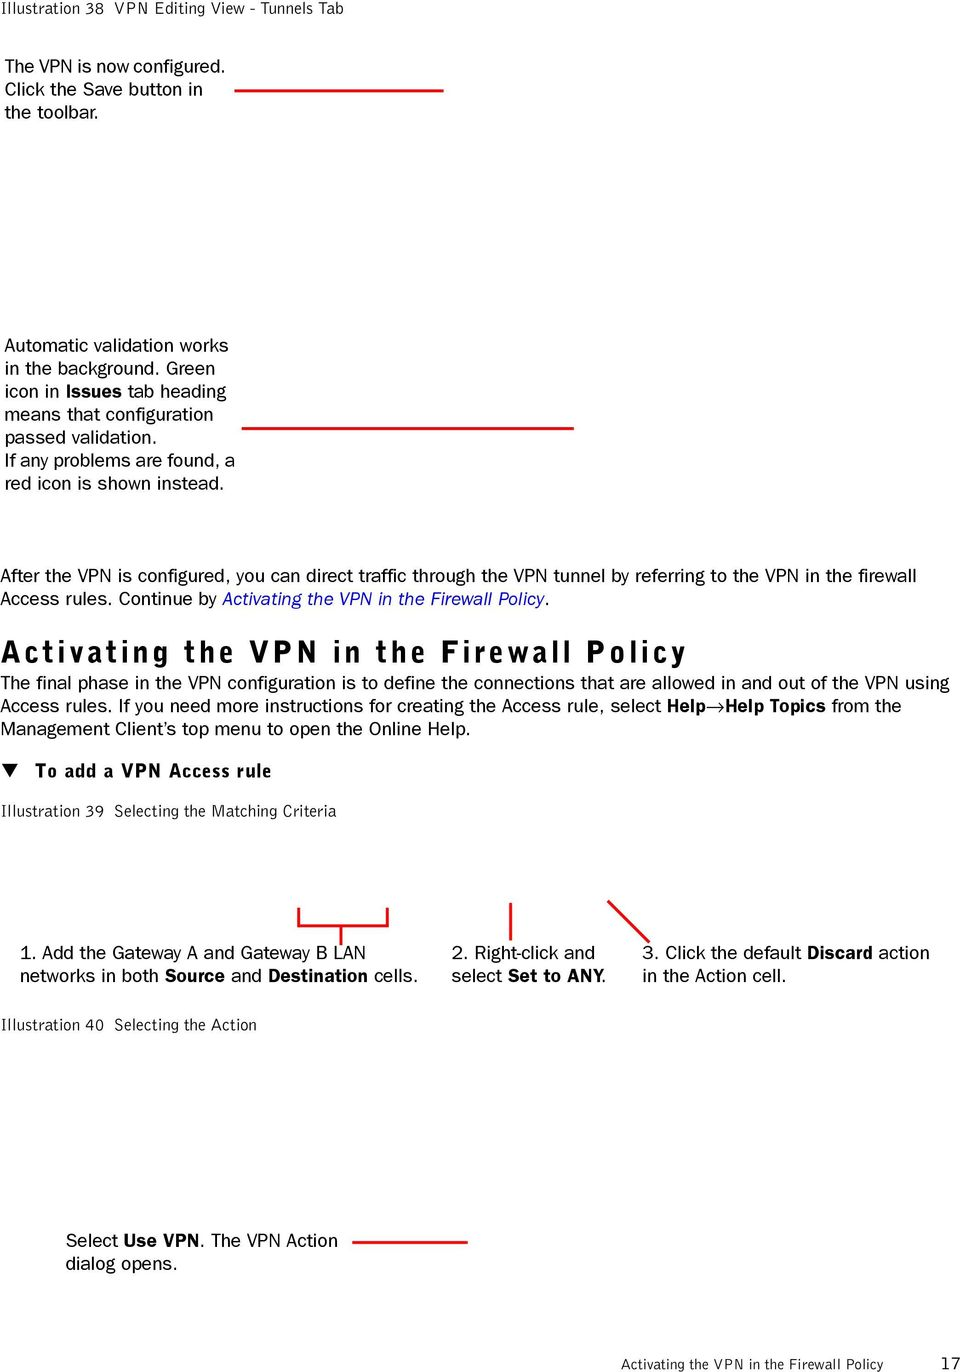 After the VPN is configured, you can direct traffic through the VPN tunnel by referring to the VPN in the firewall Access rules. Continue by Activating the VPN in the Firewall Policy.